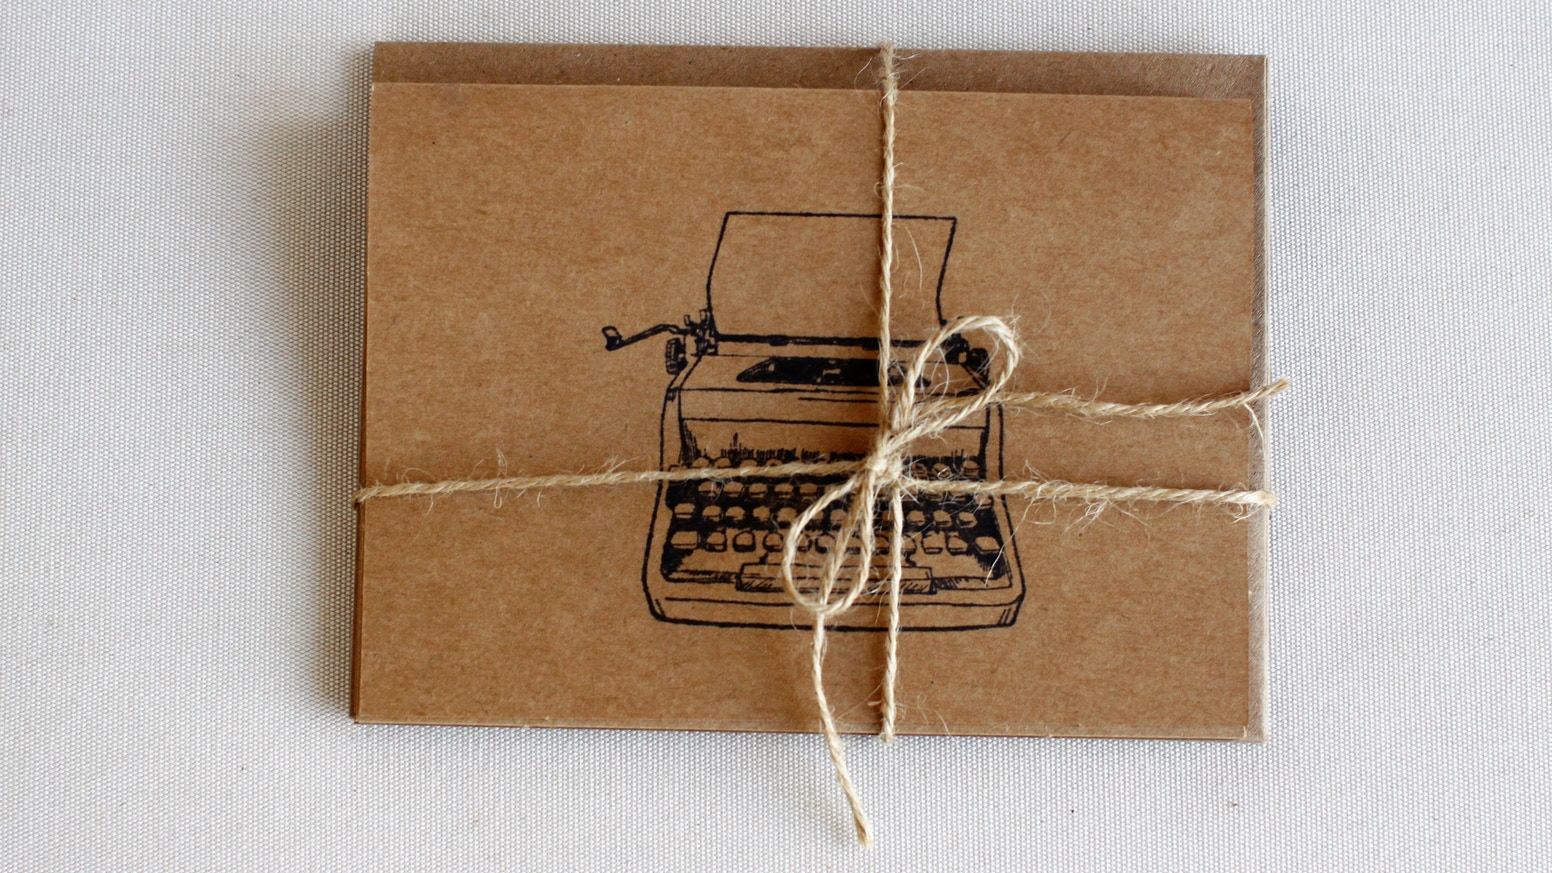 Stamp Greeting Cards Handmade And 5 By 7 By Sarah Kickstarter